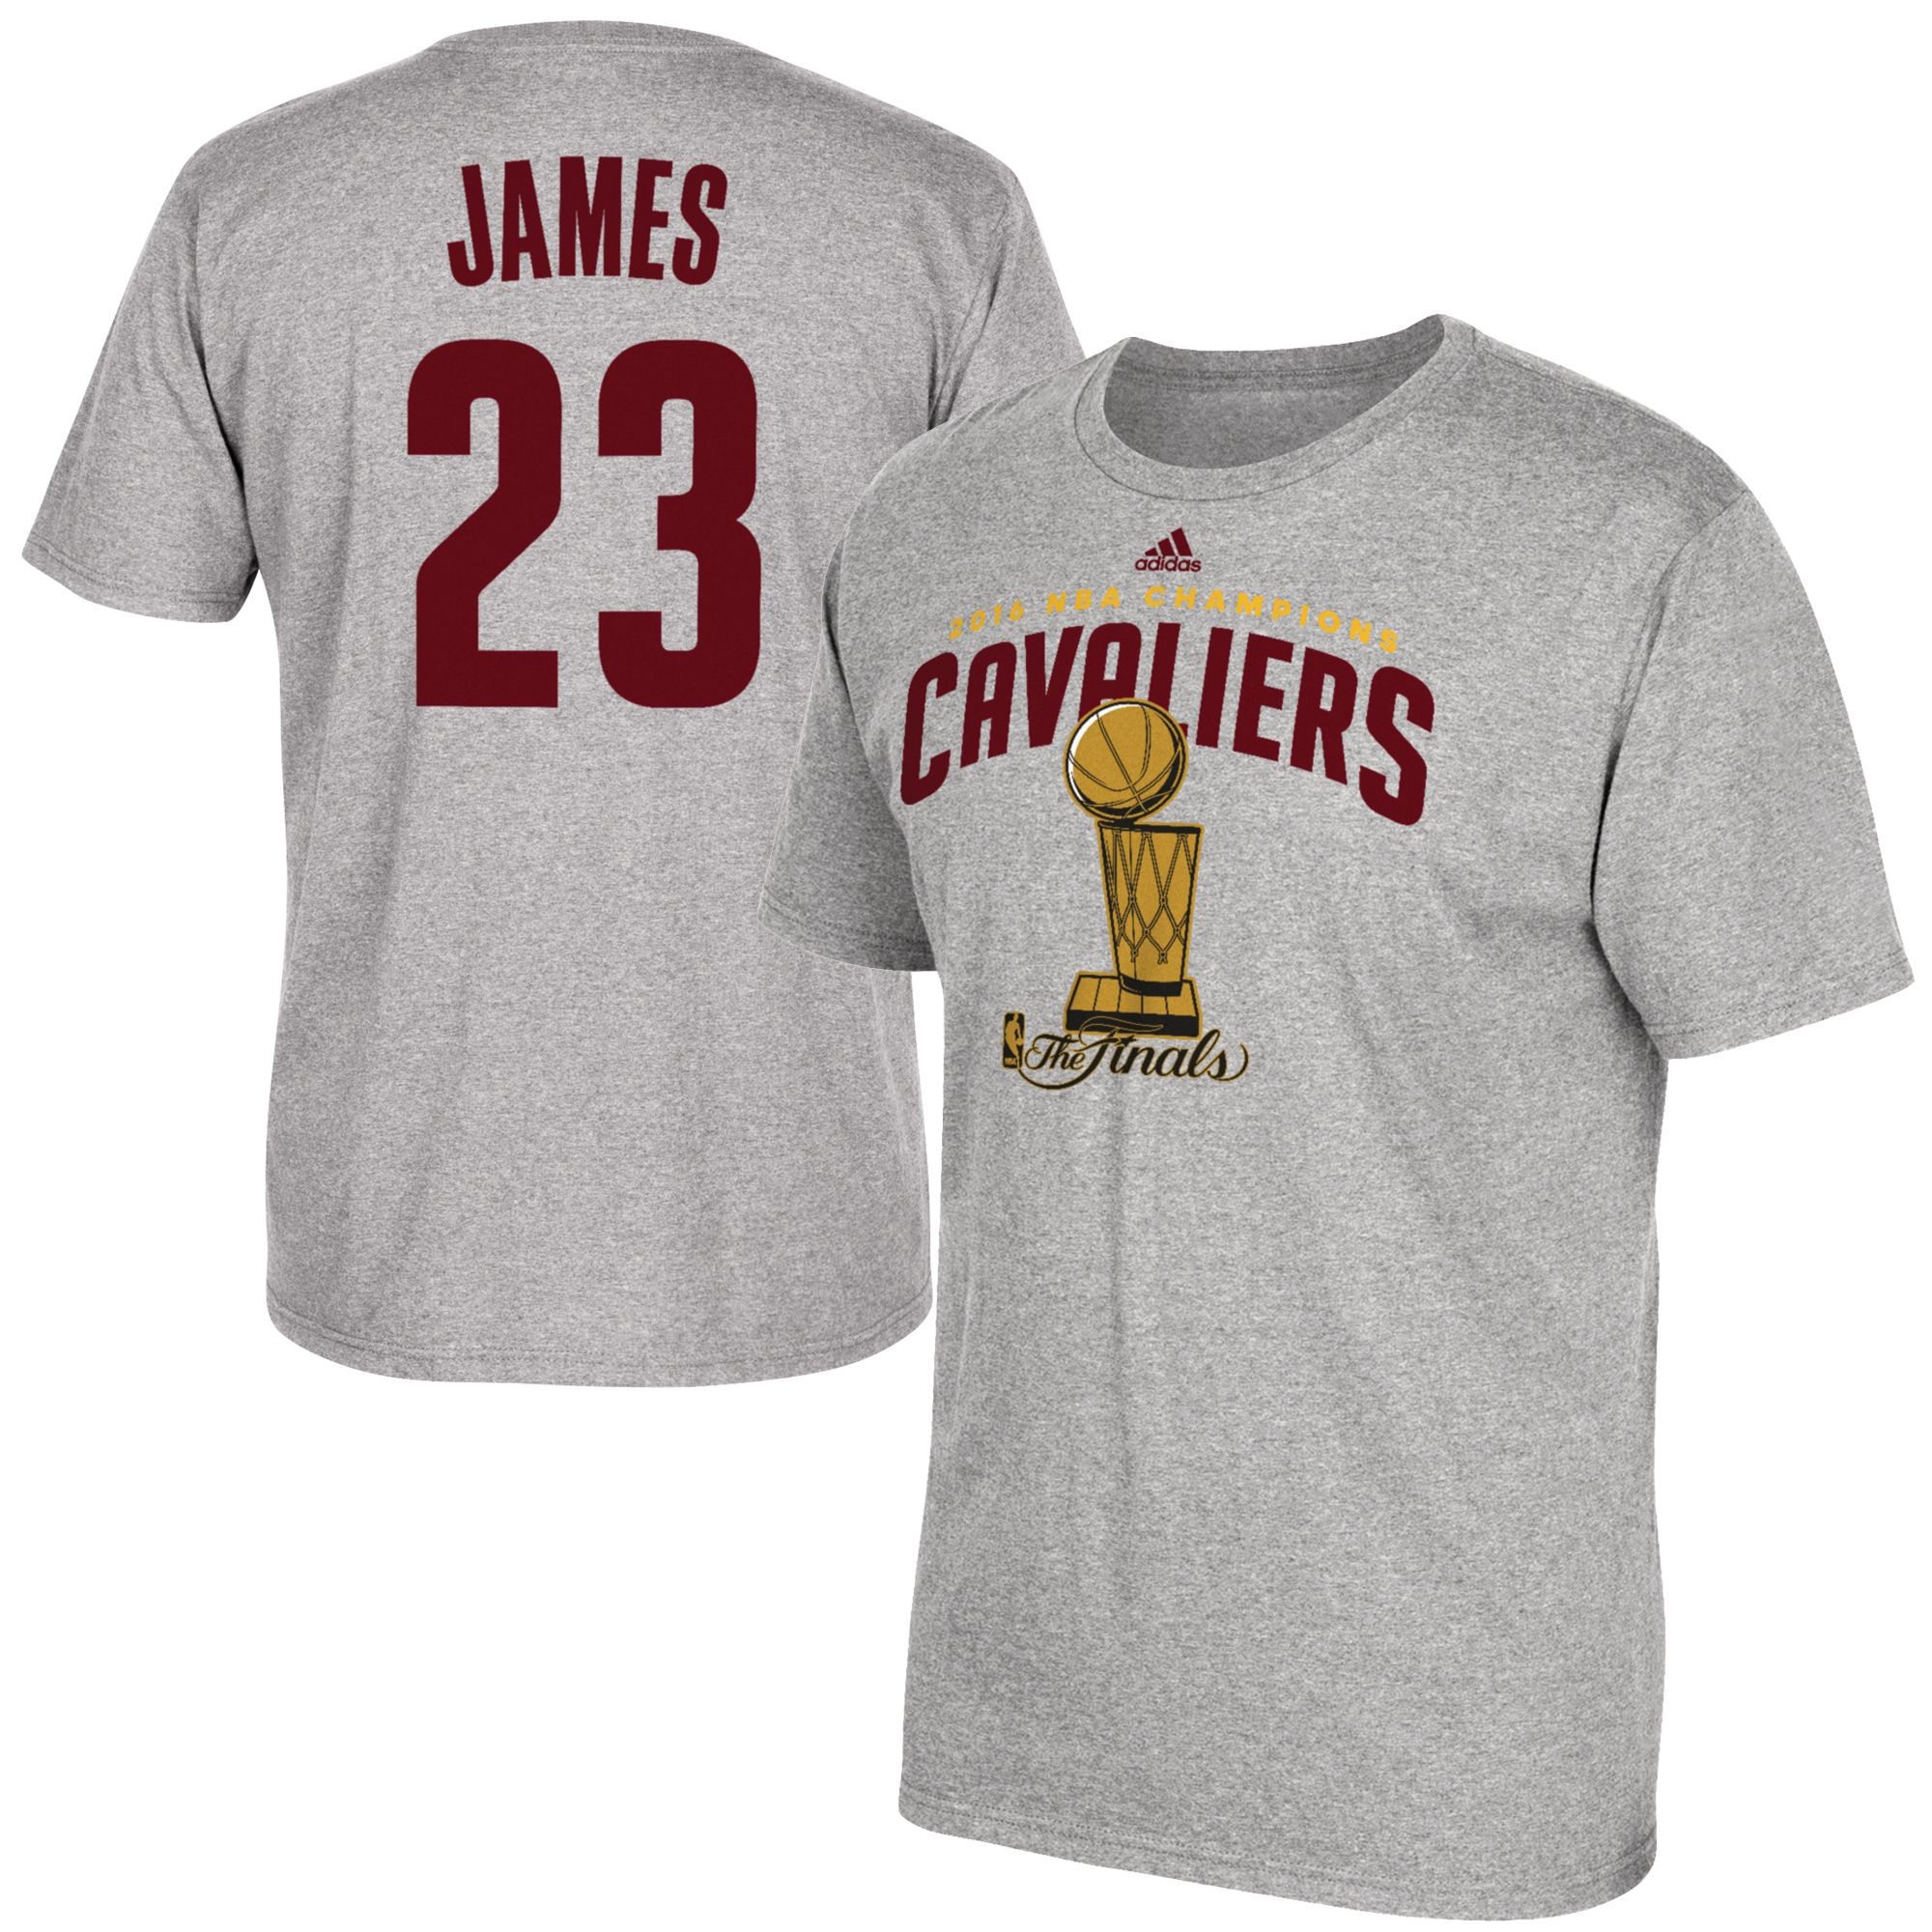 2016 cleveland cavaliers championship shirt